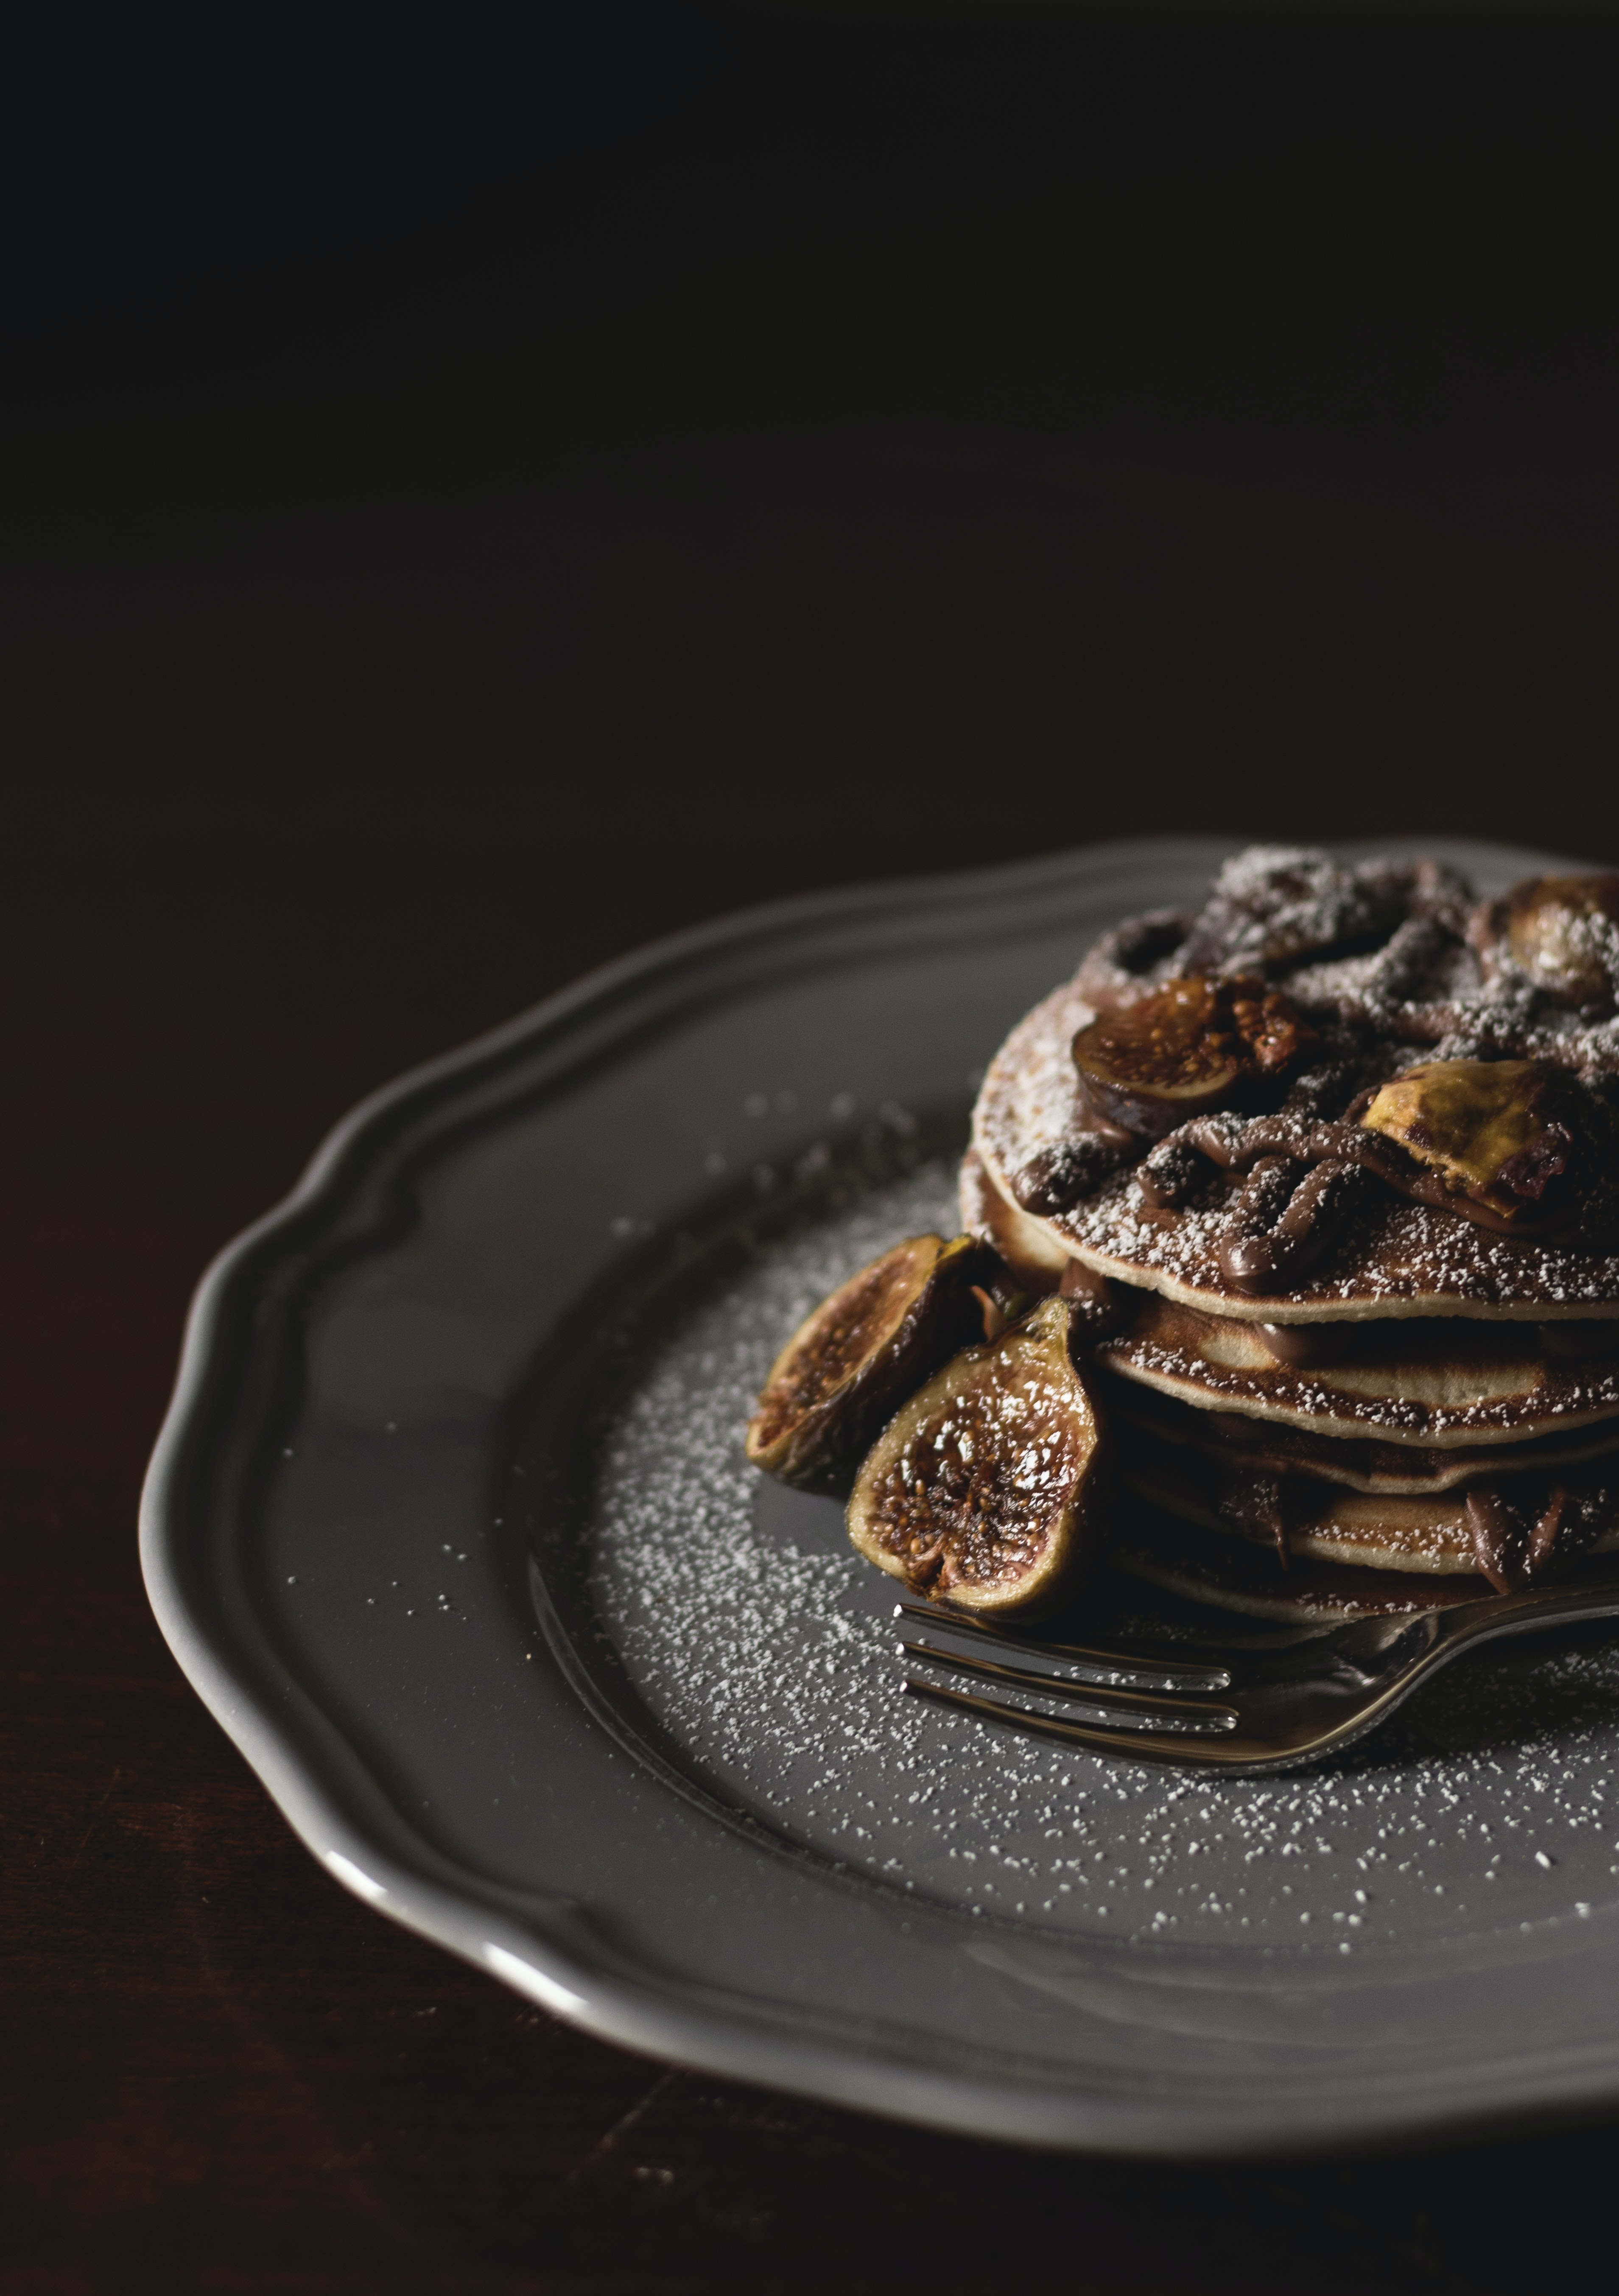 shallow focus photography of pan cakes with slices of banana and syrup on top on gray plate